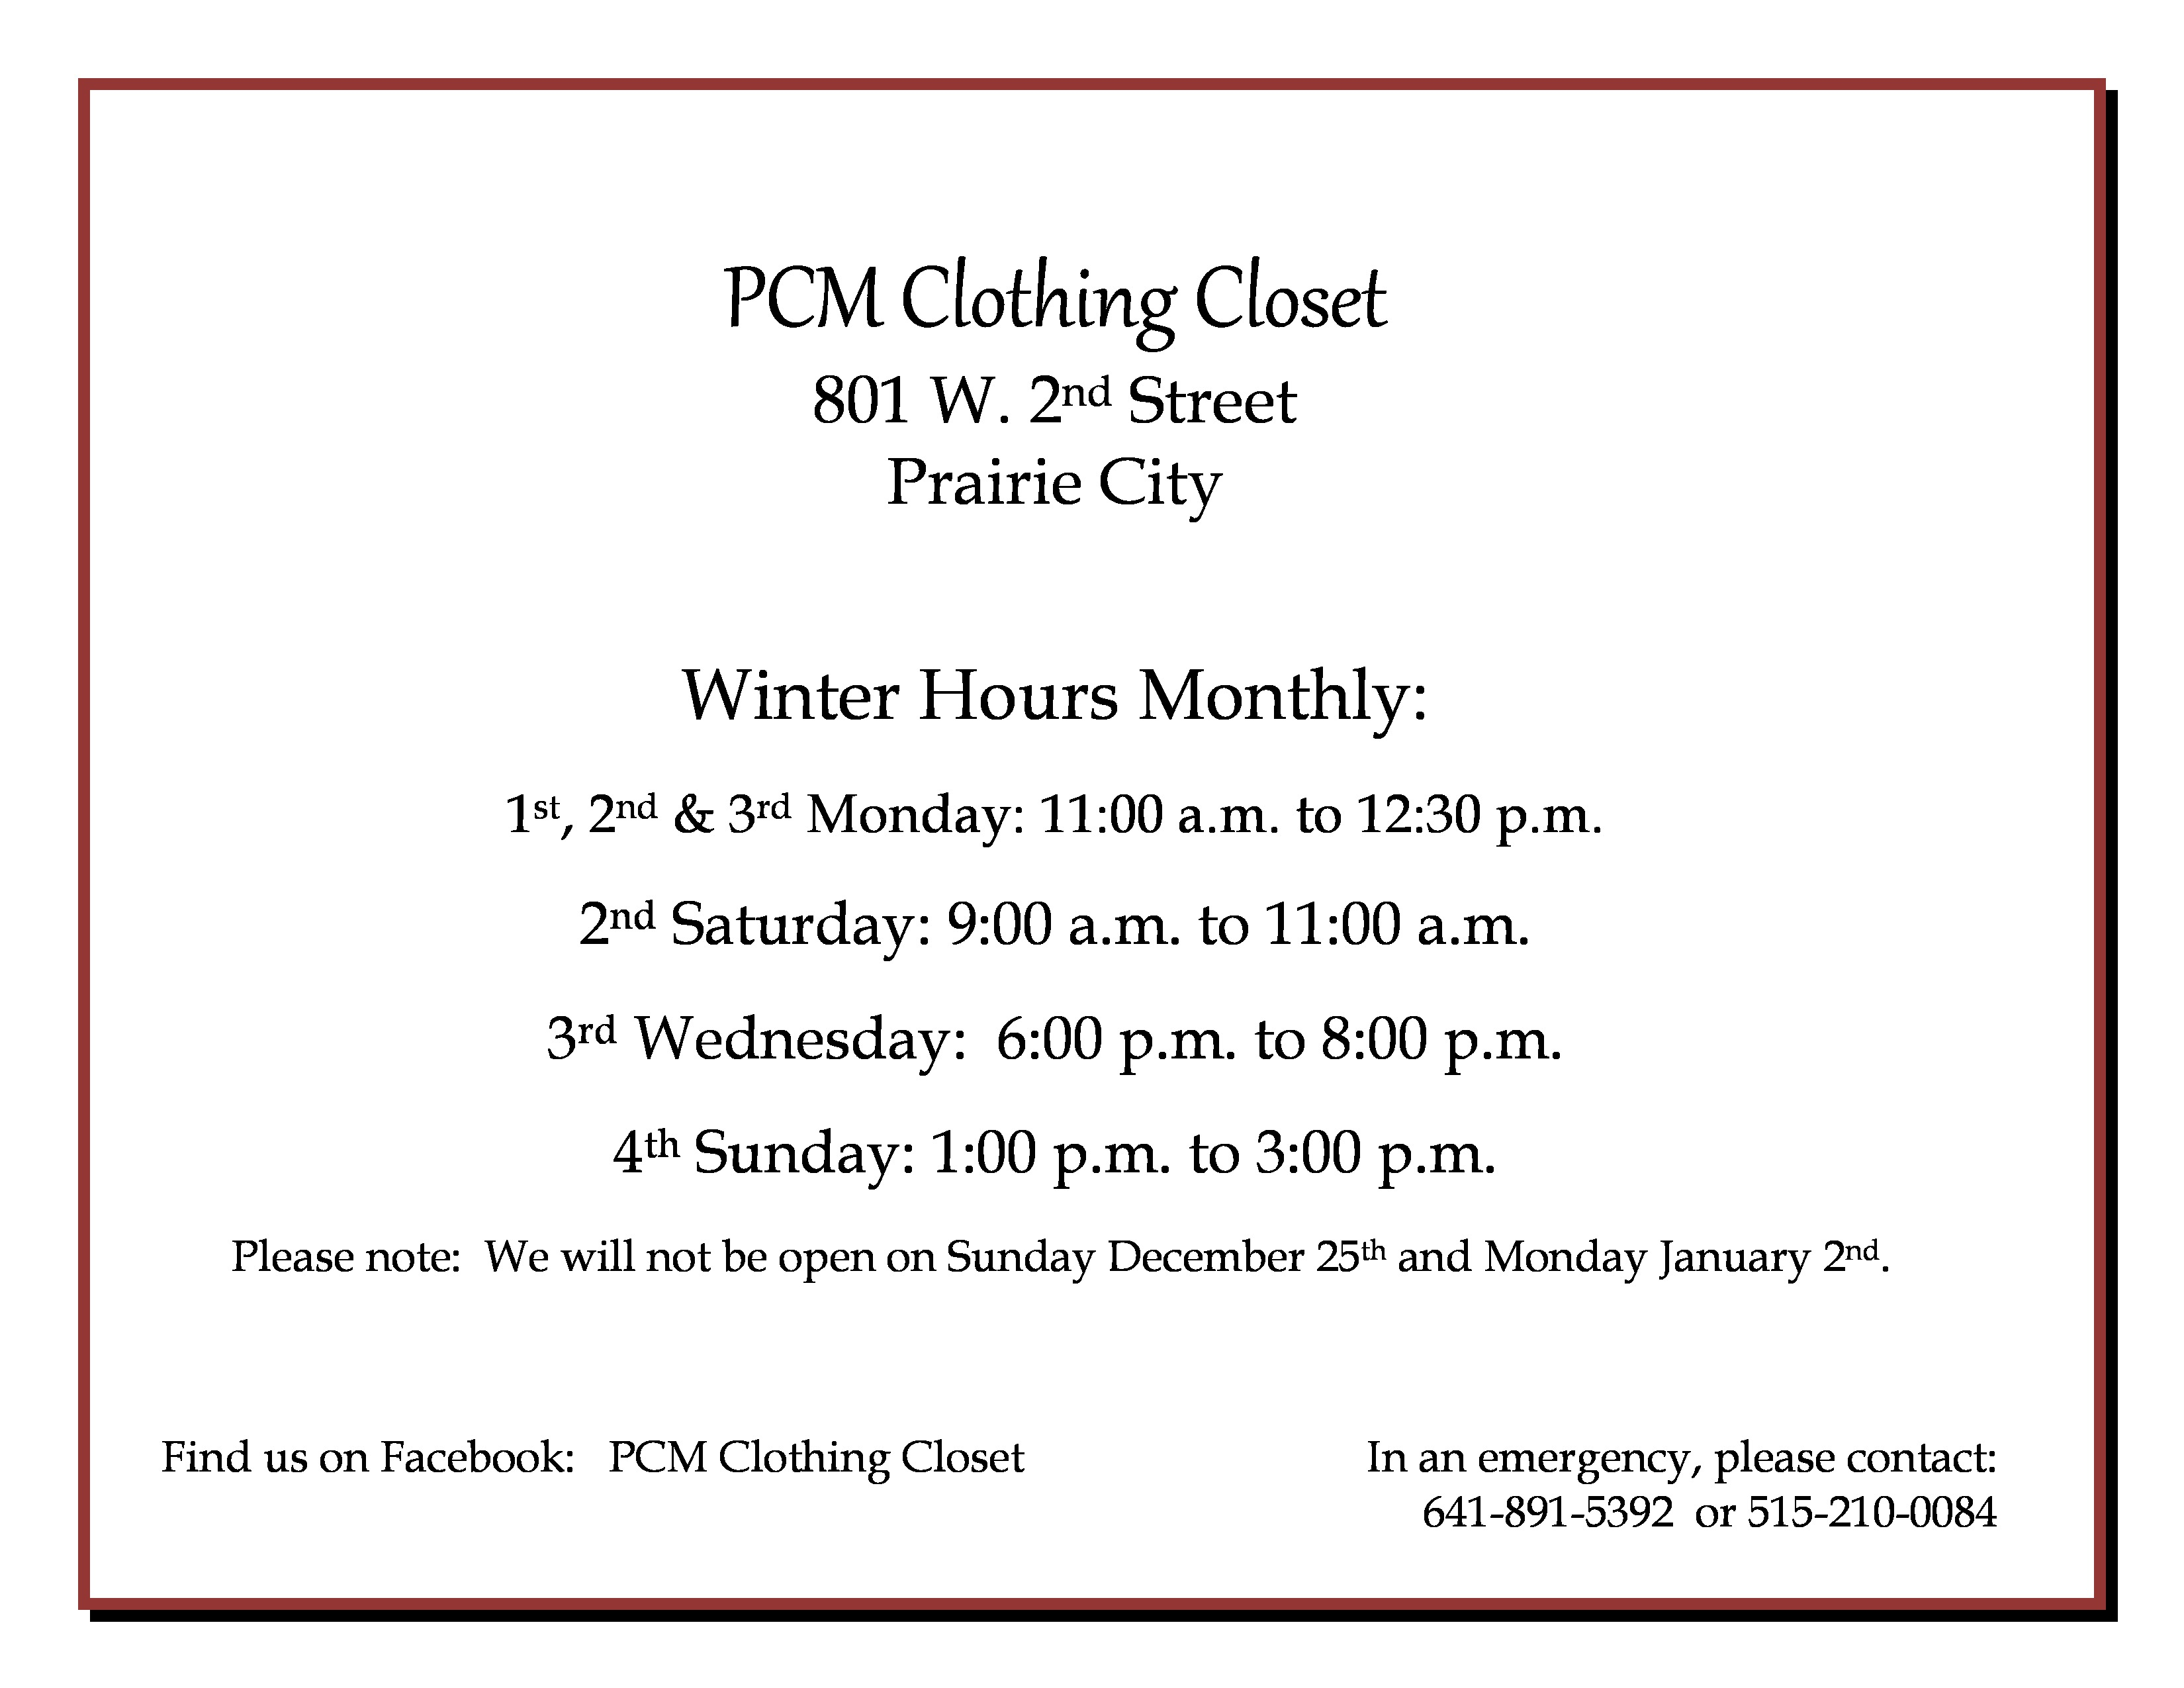 pcm-clothing-closet-winter-hours-page-0